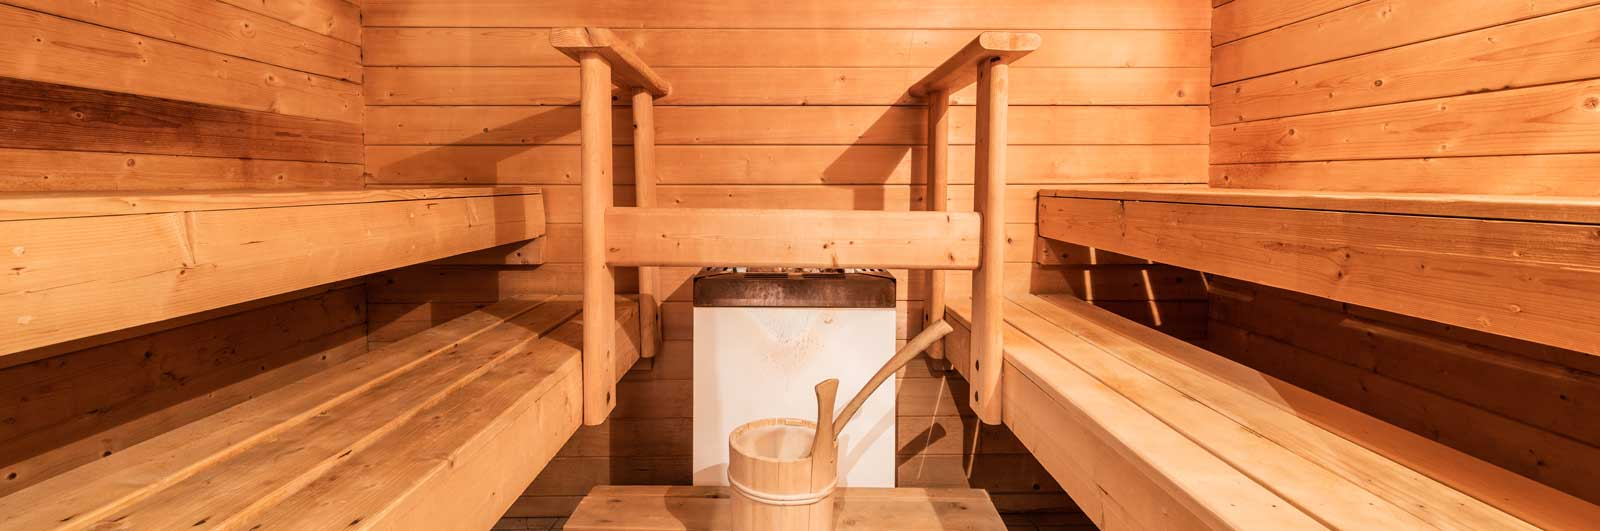 pension wiesfleck sauna